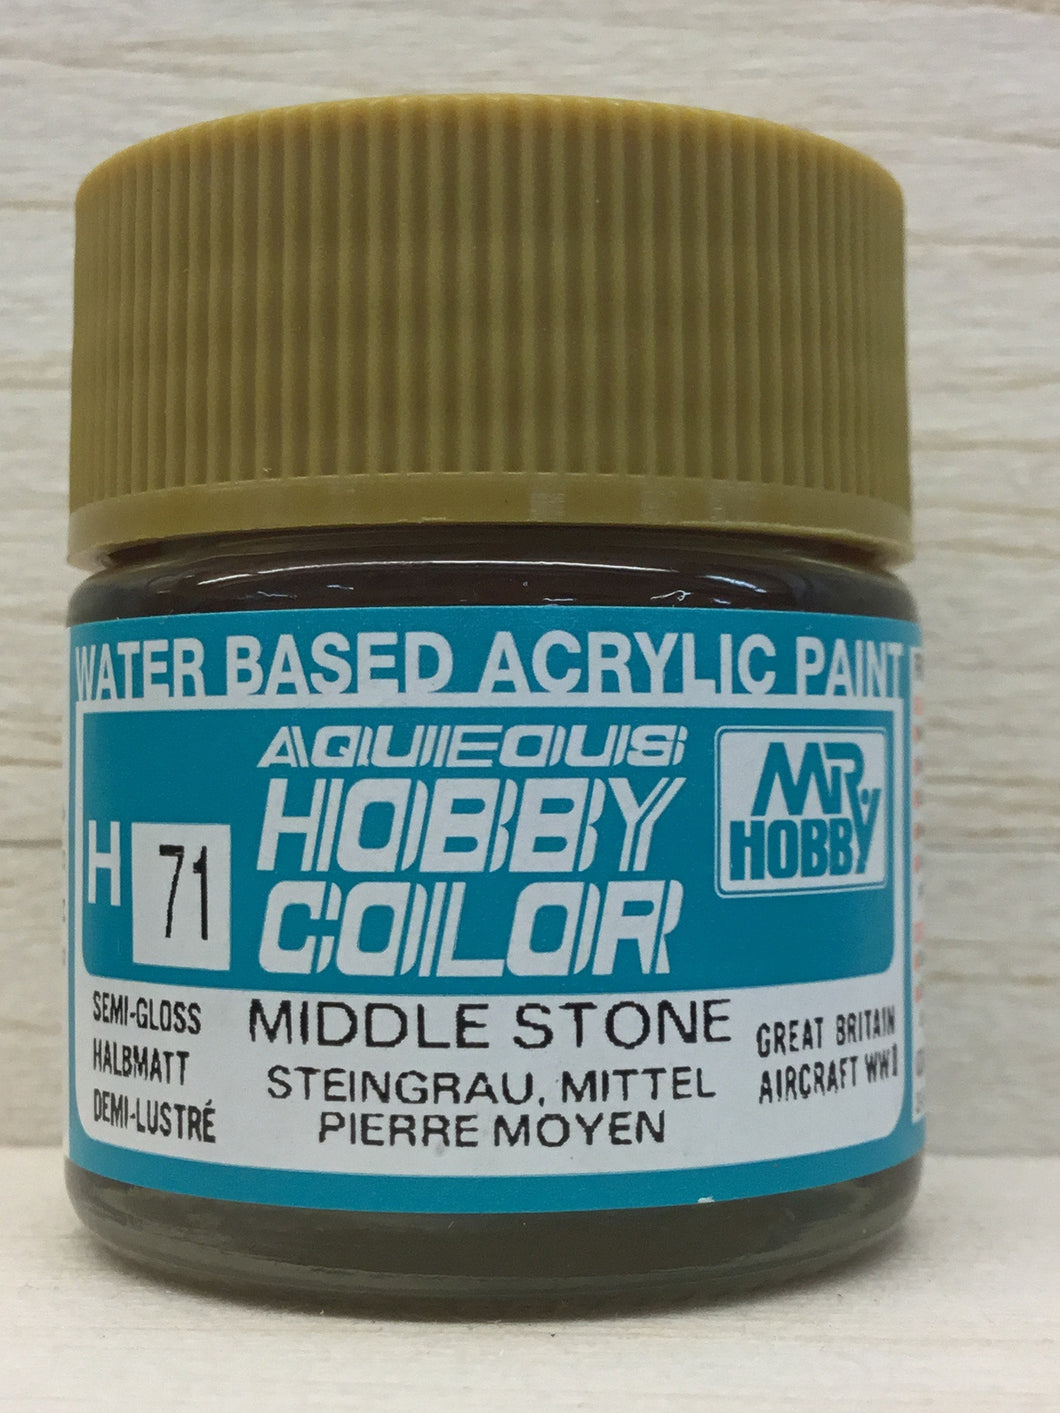 GUNZE MR HOBBY COLOR H71 SEMI GLOSS MIDDLE STONE